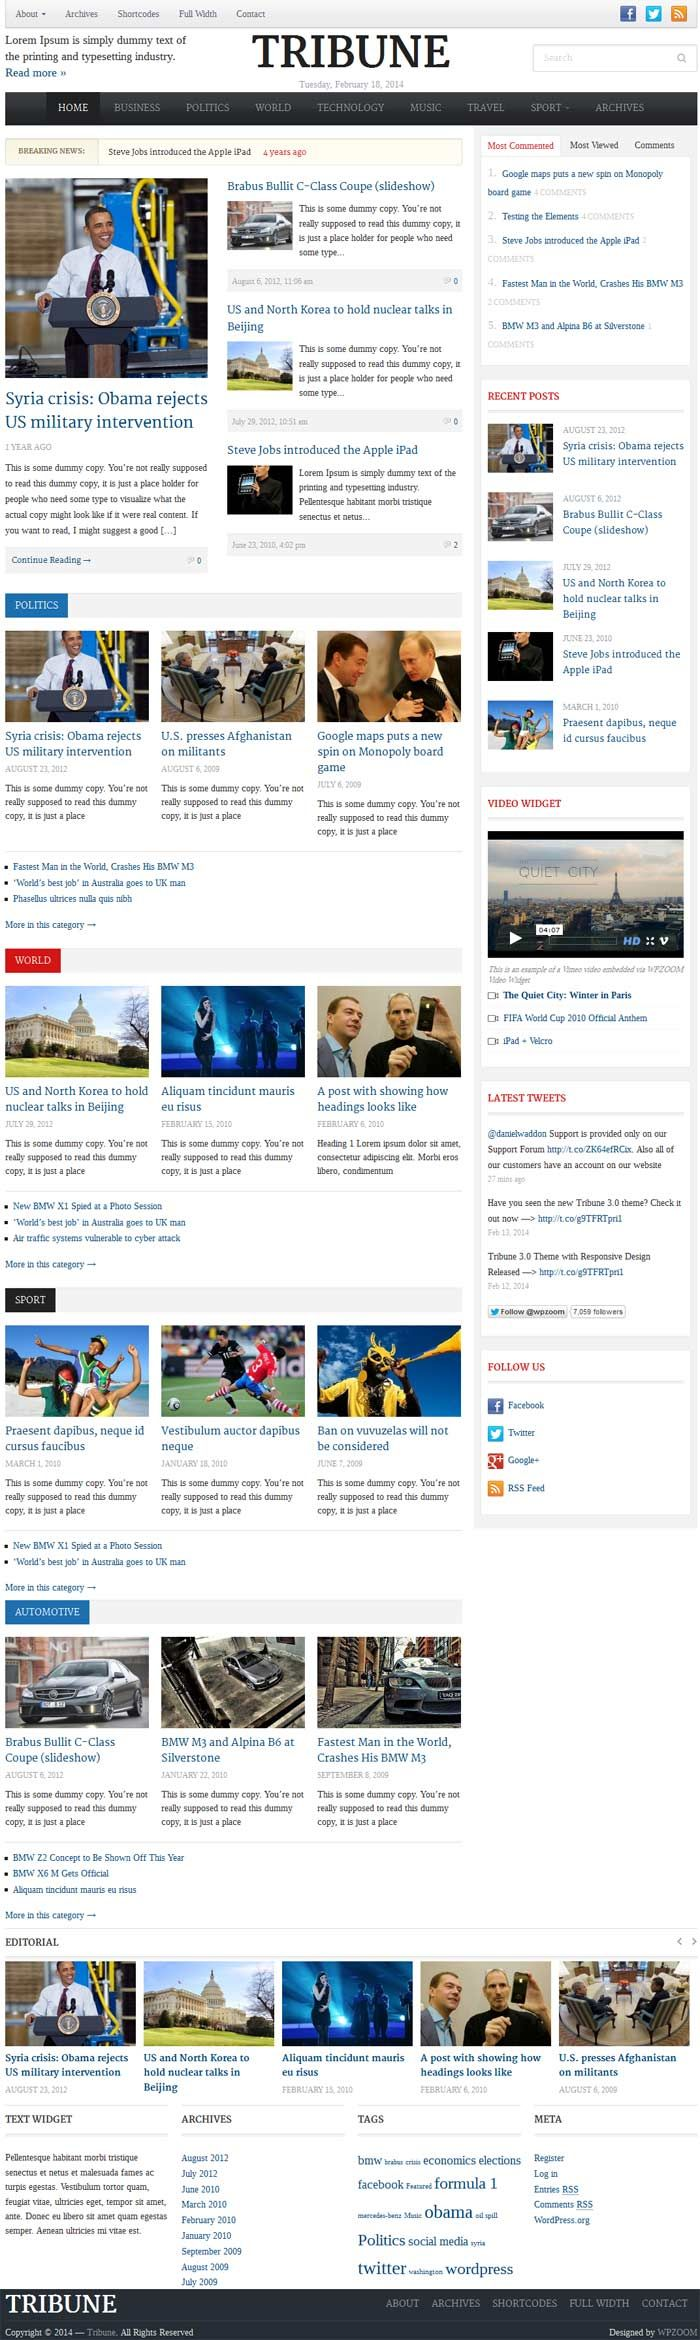 Google themes bmw - Tribune 3 0 Is A Powerful And Professional News And Magazine Wordpress Theme From Wpzoom The